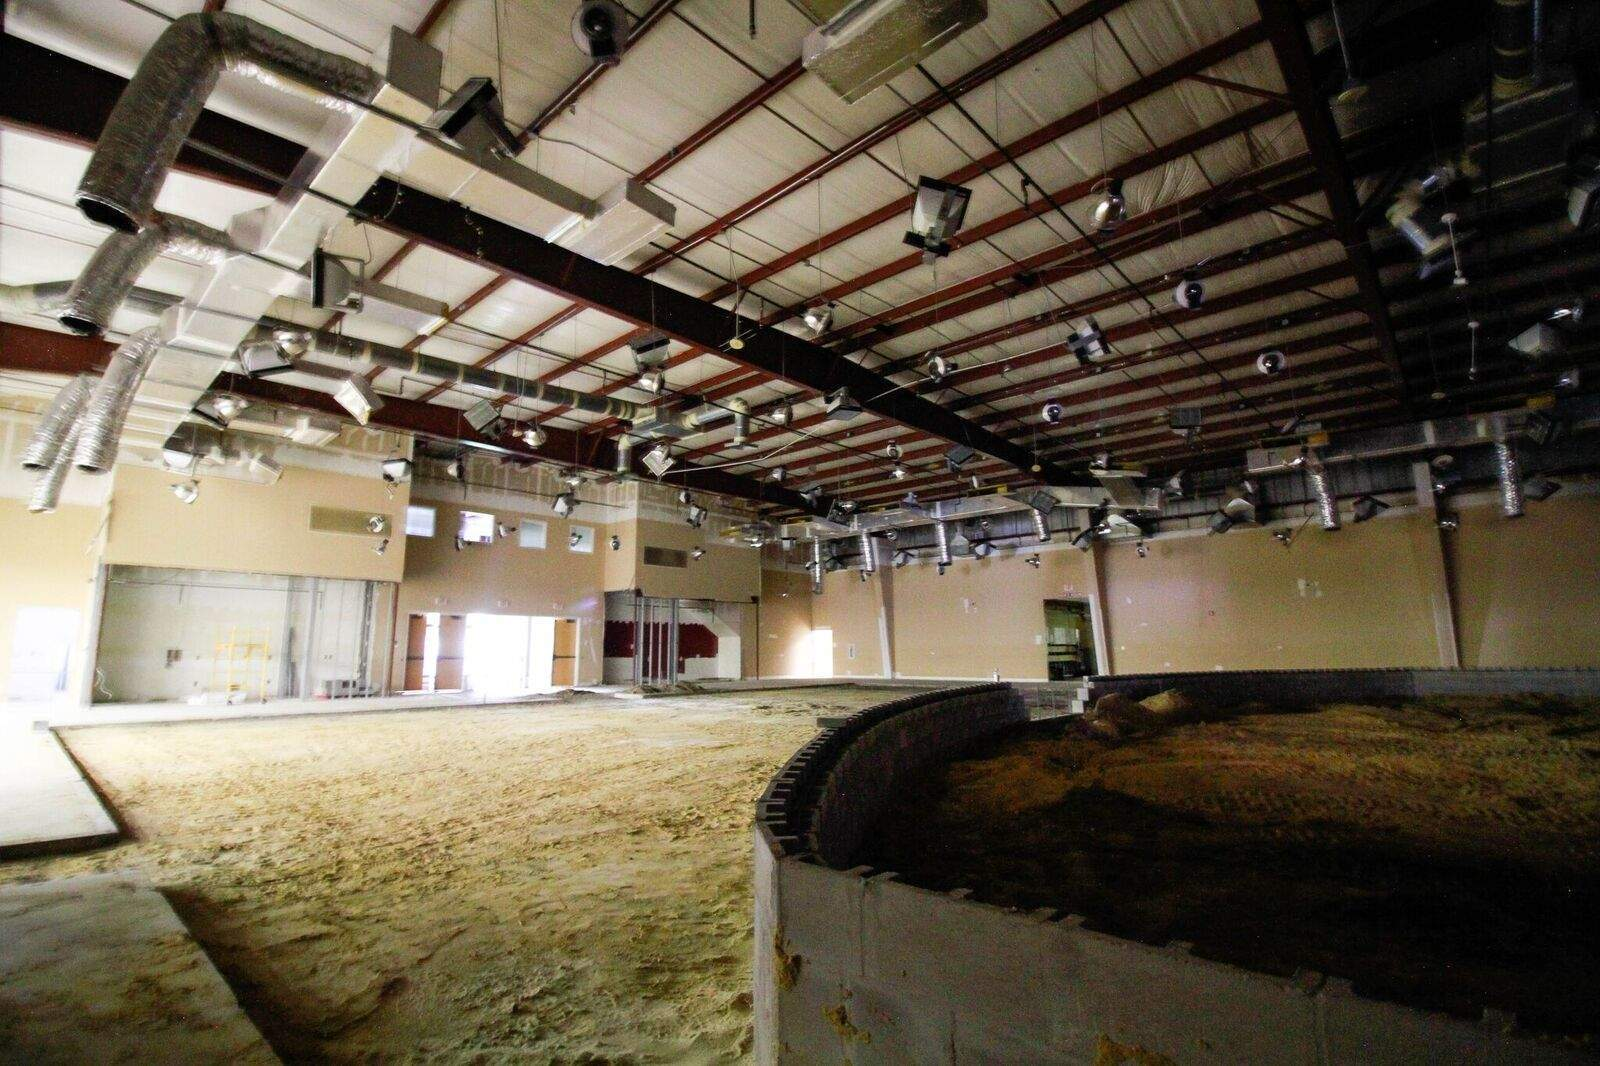 A view back into the auditorium from stage left. We drastically reduced the size of this room from its original scale — our vision remains focused on worshipping and serving in connected neighborhood communities.